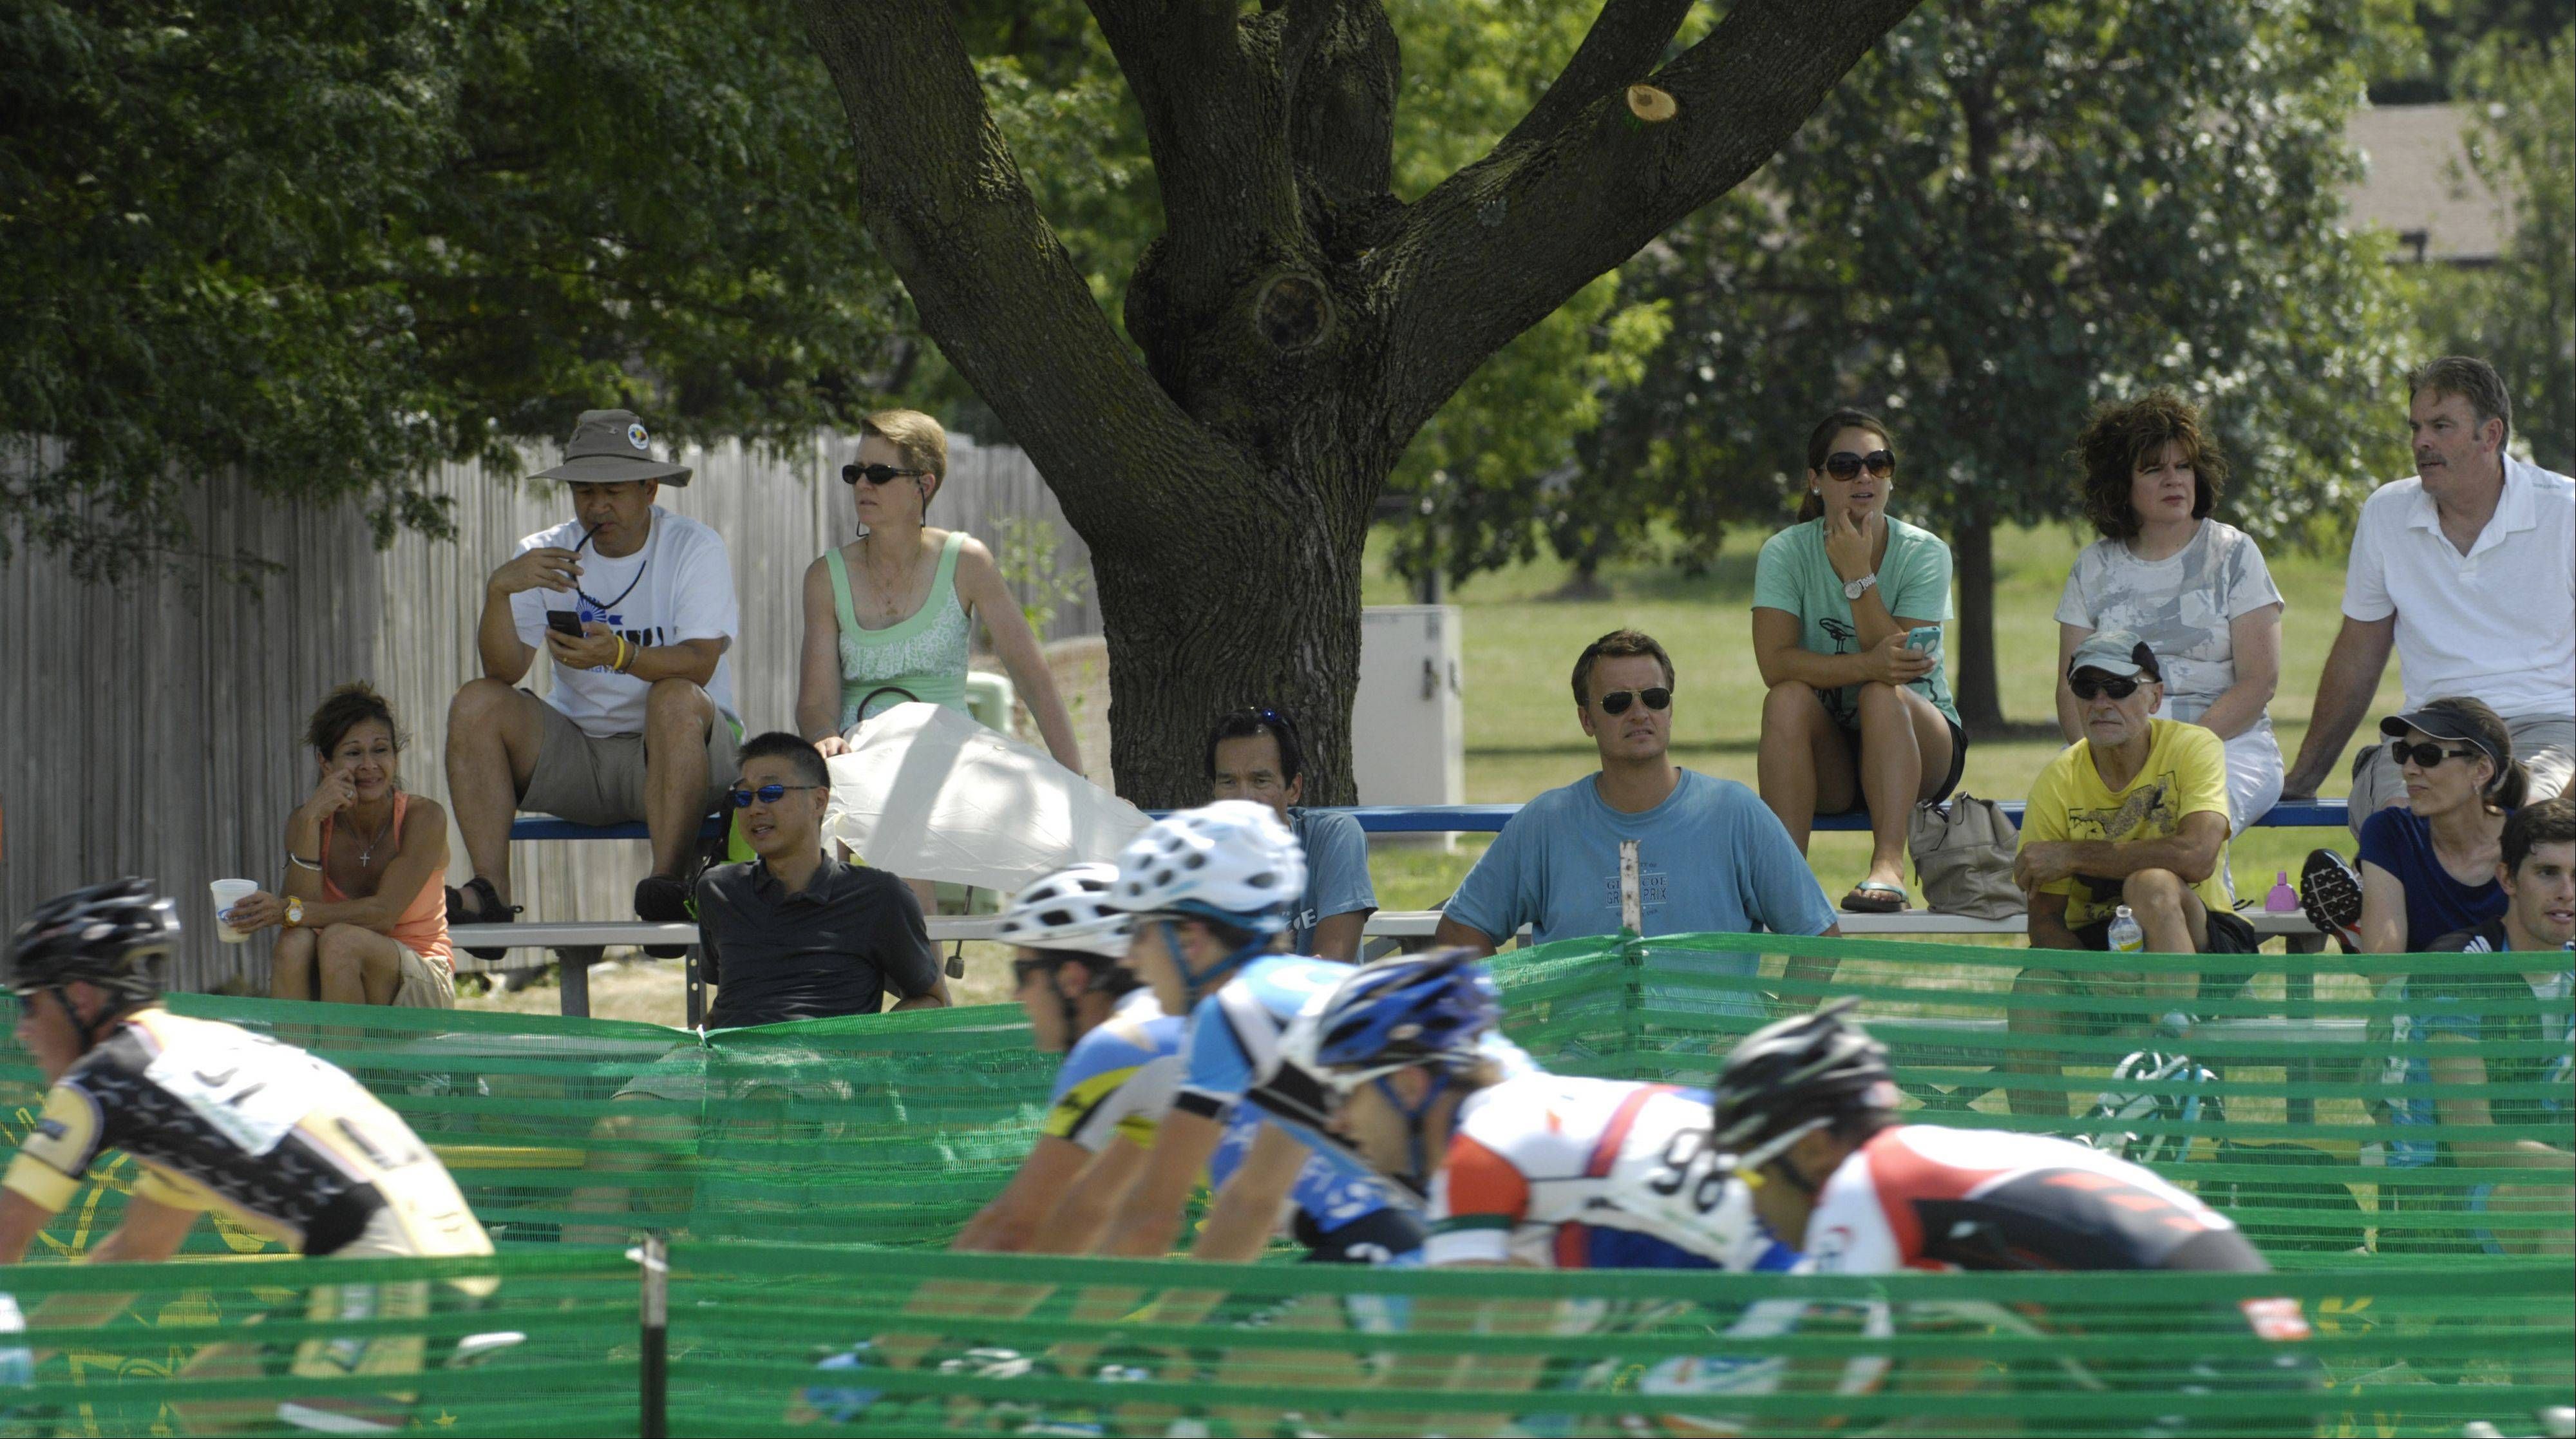 Spectators watch a bike race while seated beneath the shade of a tree during the Tour of Elk Grove Saturday.